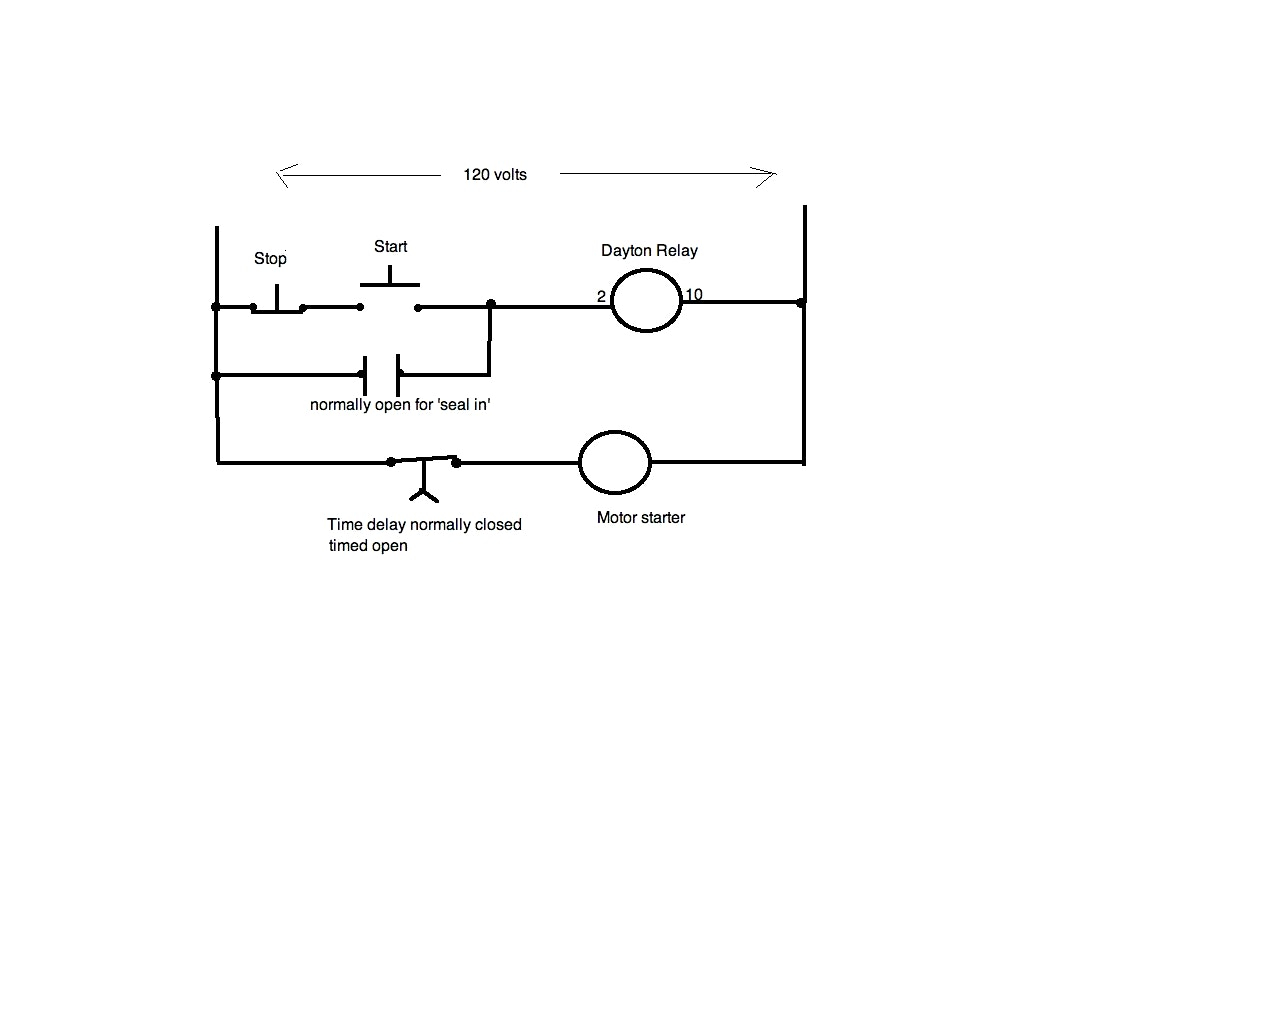 hight resolution of dayton 6a859 wiring diagram free download u2022 oasis dl co rh oasis dl co